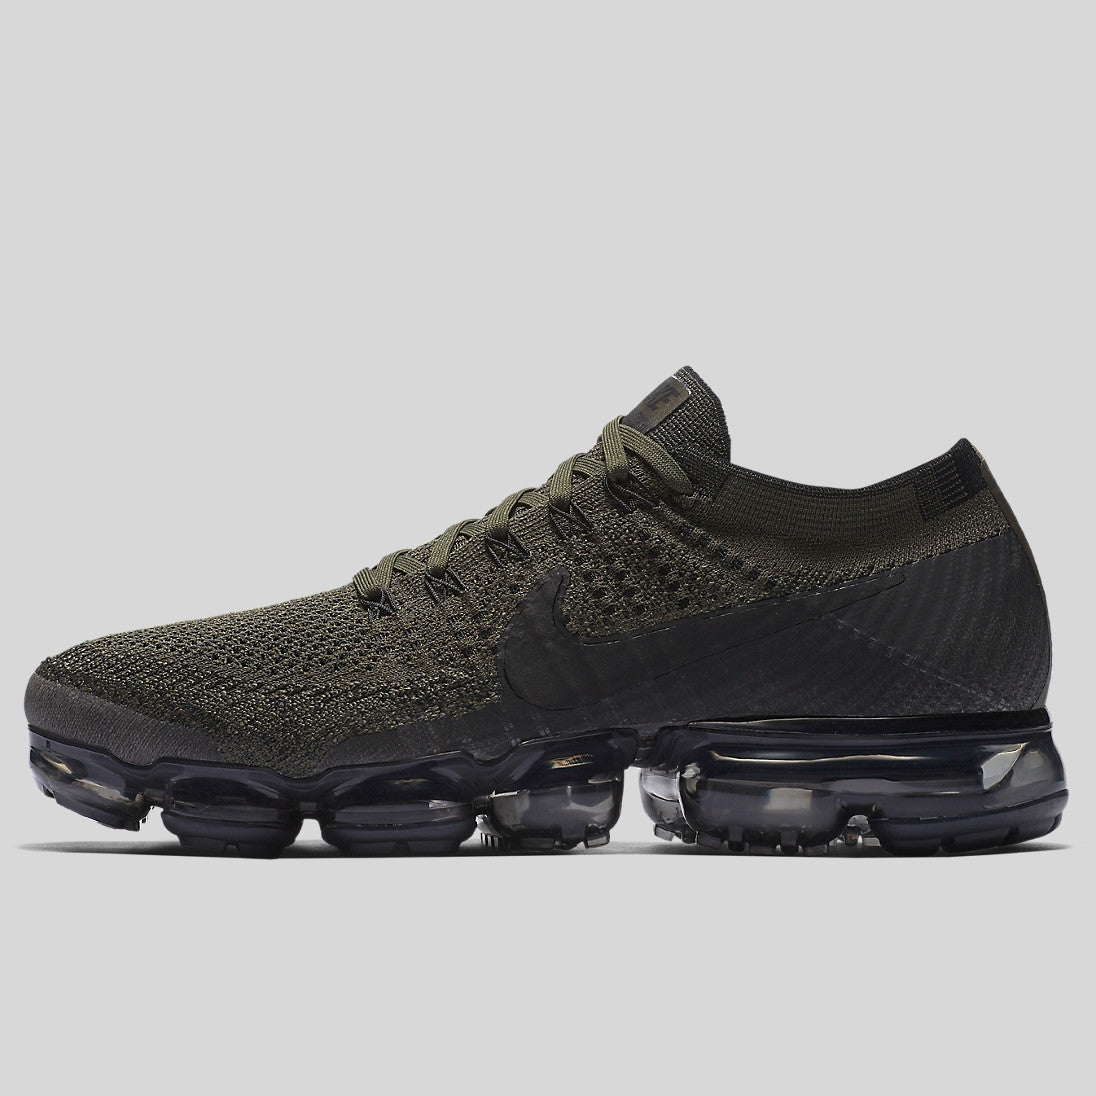 0785f3ef38 Nike Air Vapormax Flyknit Cargo Khaki Black Medium Olive (849558-300) |  KIX-FILES